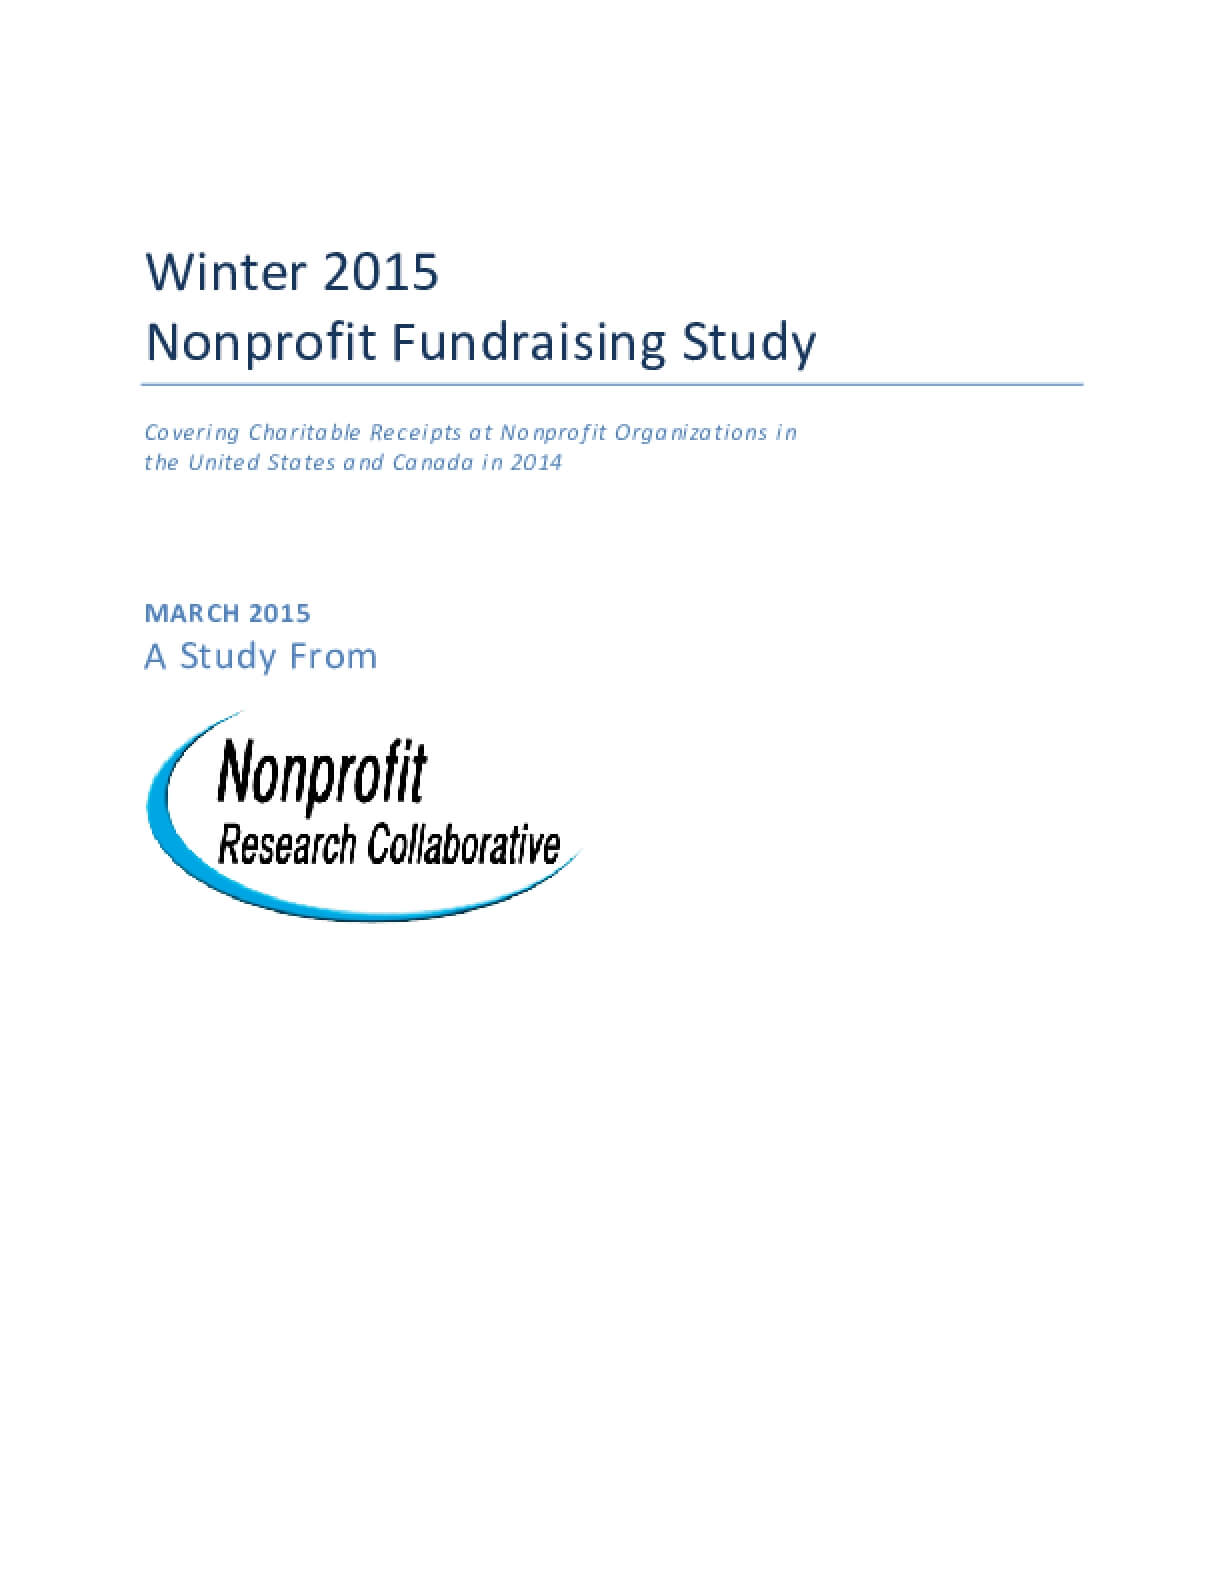 Winter 2015 Nonprofit Fundraising Study: Covering Charitable Receipts at Nonprofit Organizations in the United States and Canada in 2014